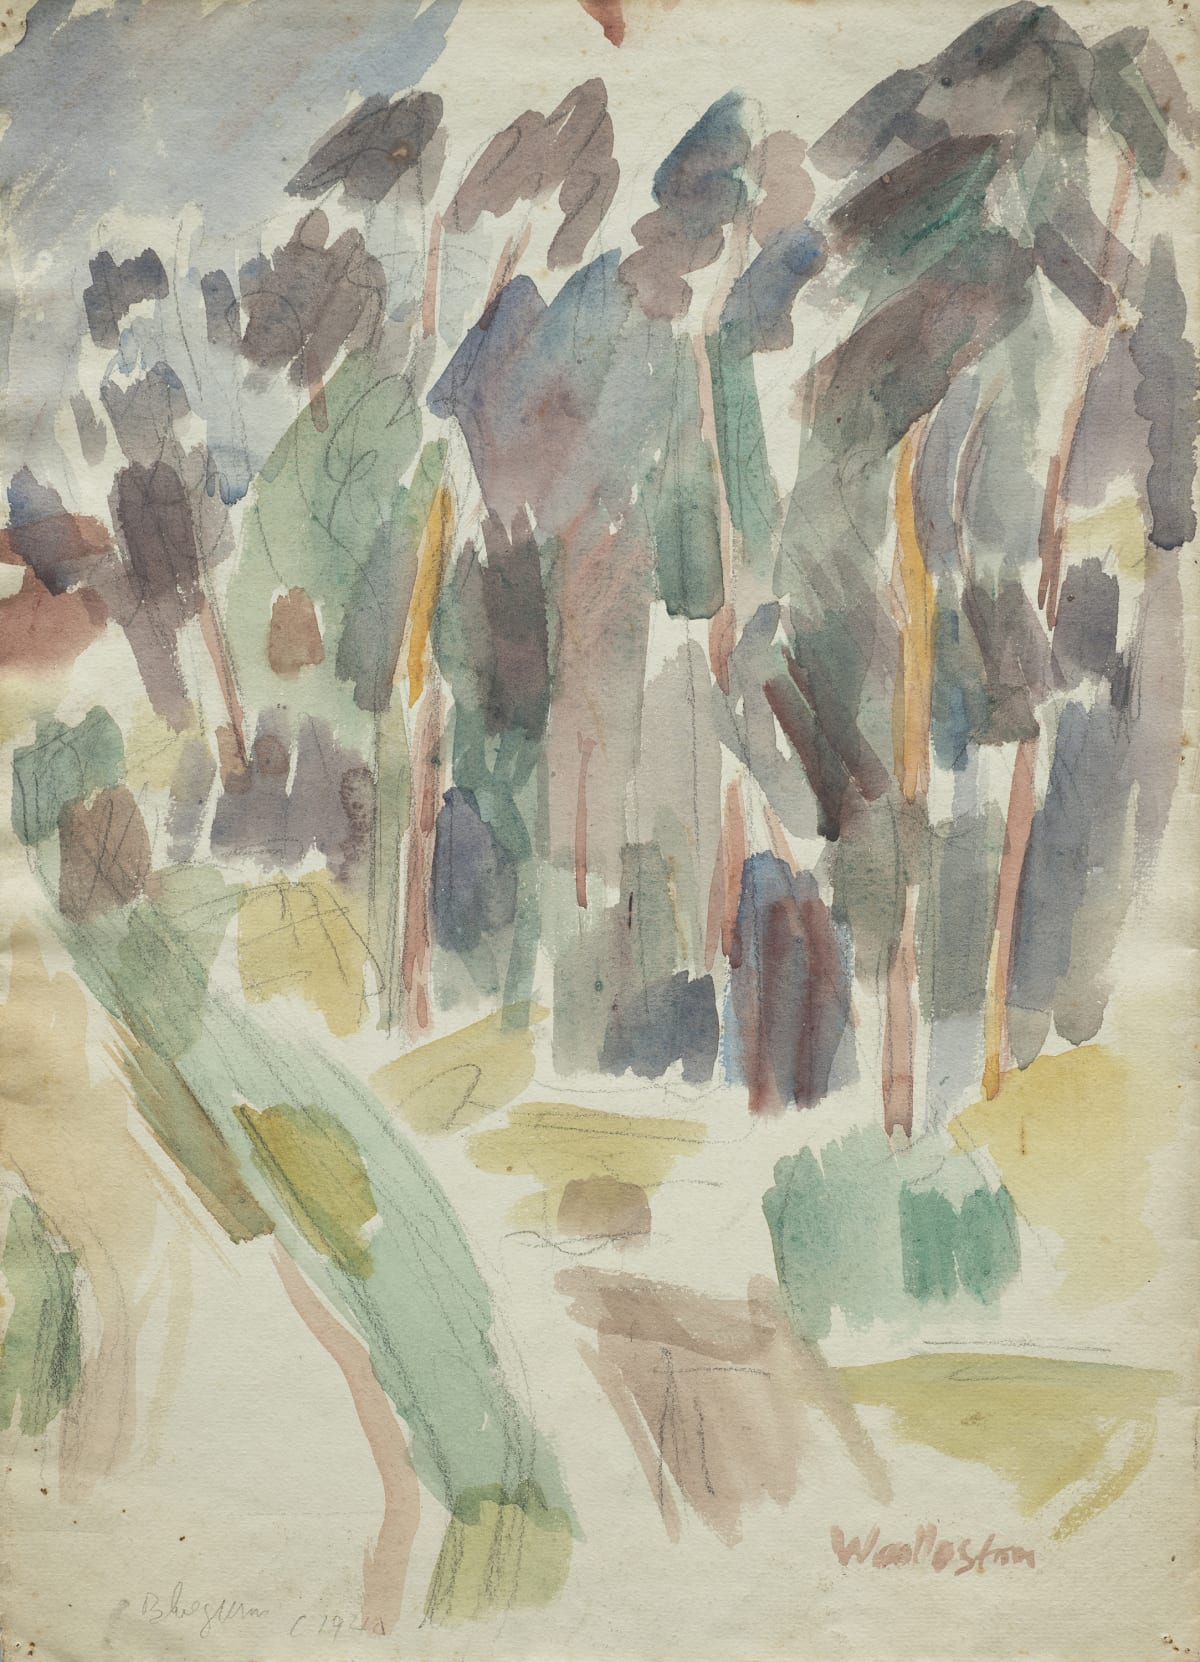 Mountford Tosswill Woollaston Bluegums Higgs Hill, c1940 watercolour and crayon on paper 395mm x 285mm